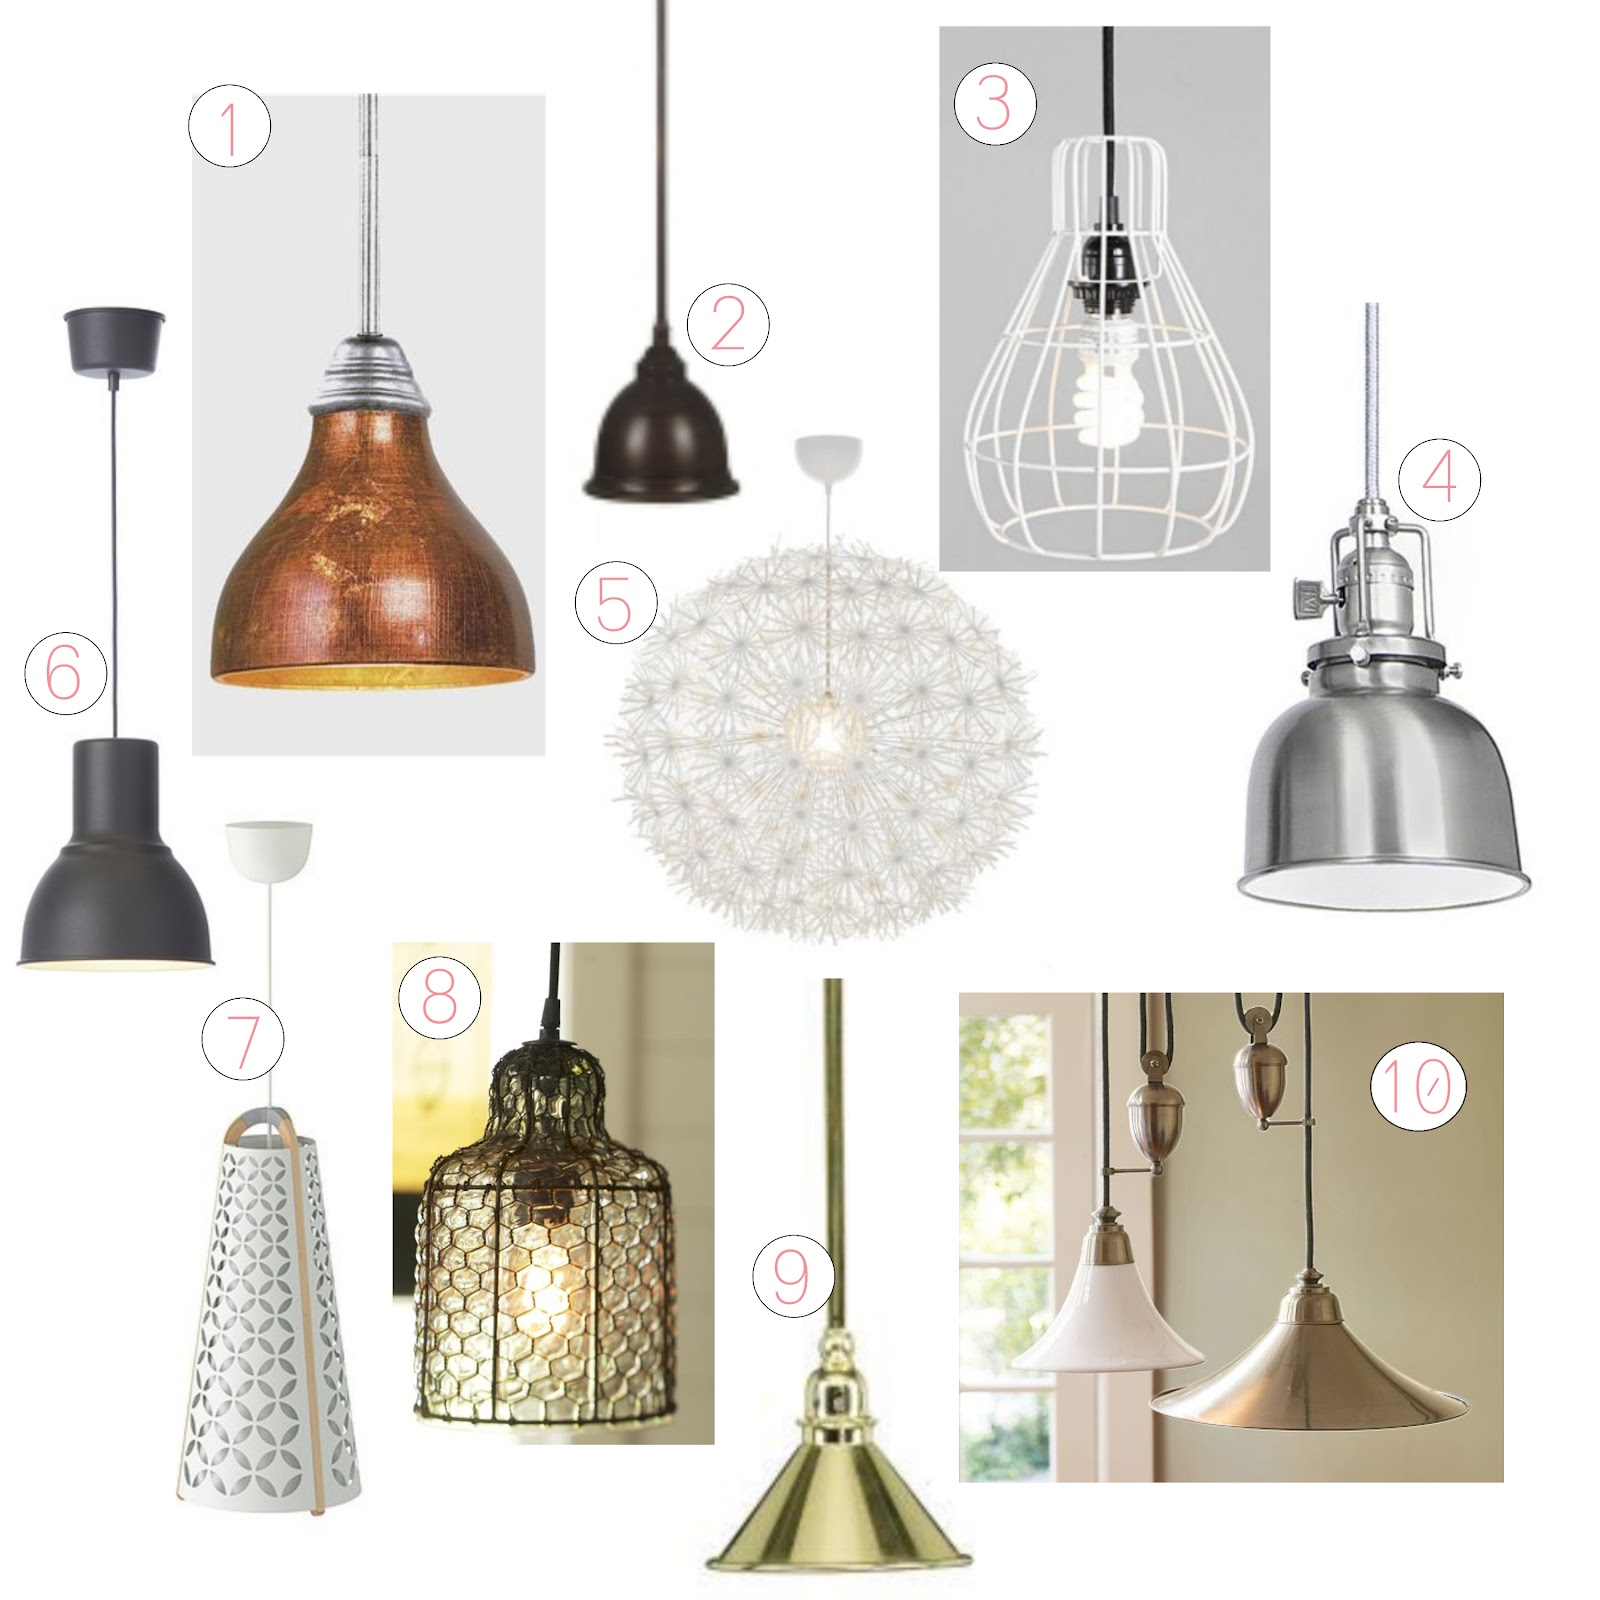 Kaes corner design money saving monday pendant lights here are a few of my favorite pendant lights under 100 and one just over 100 mozeypictures Image collections